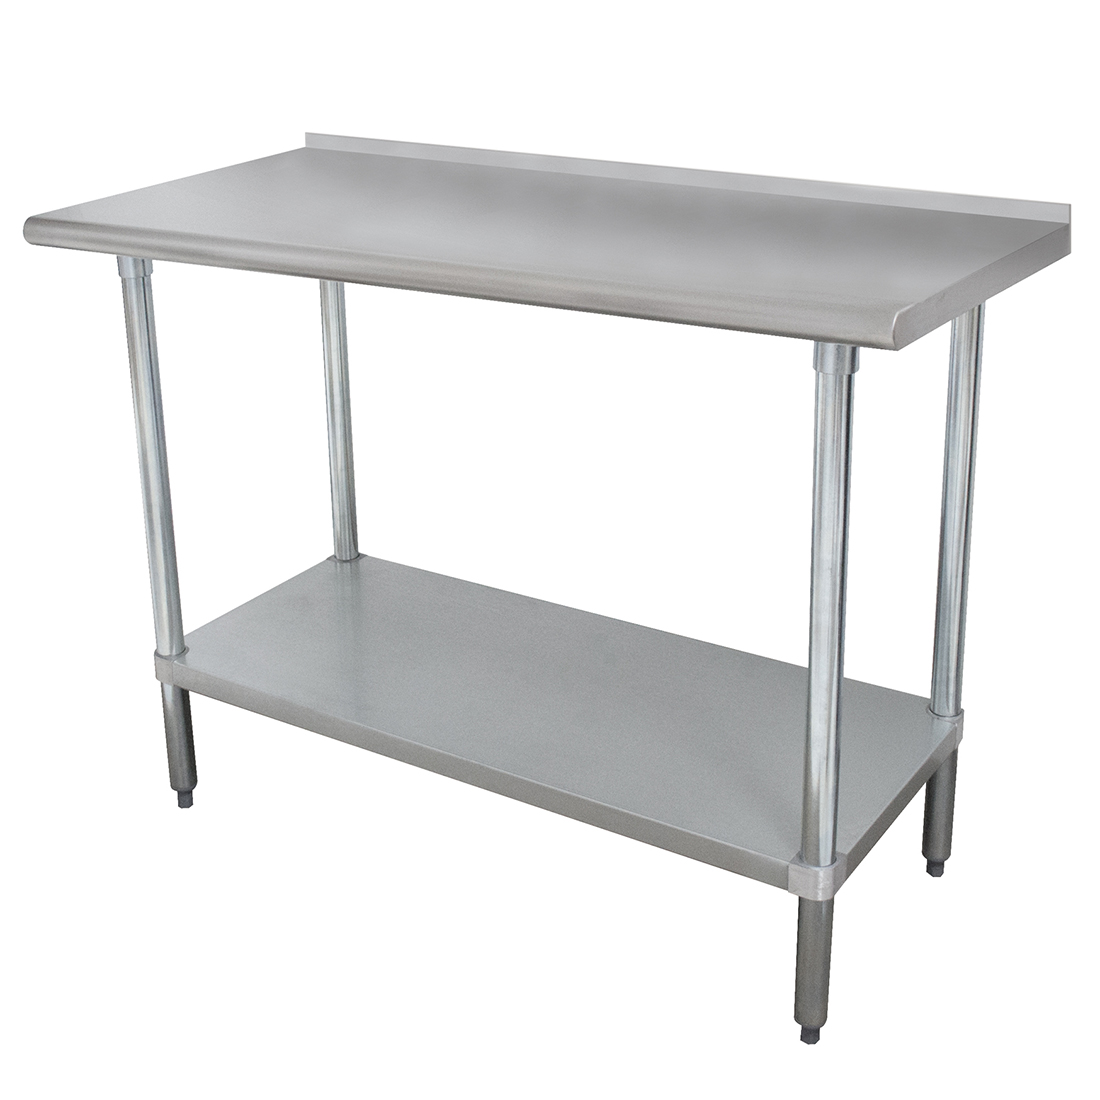 Advance Tabco FMG-3010 work table, 109